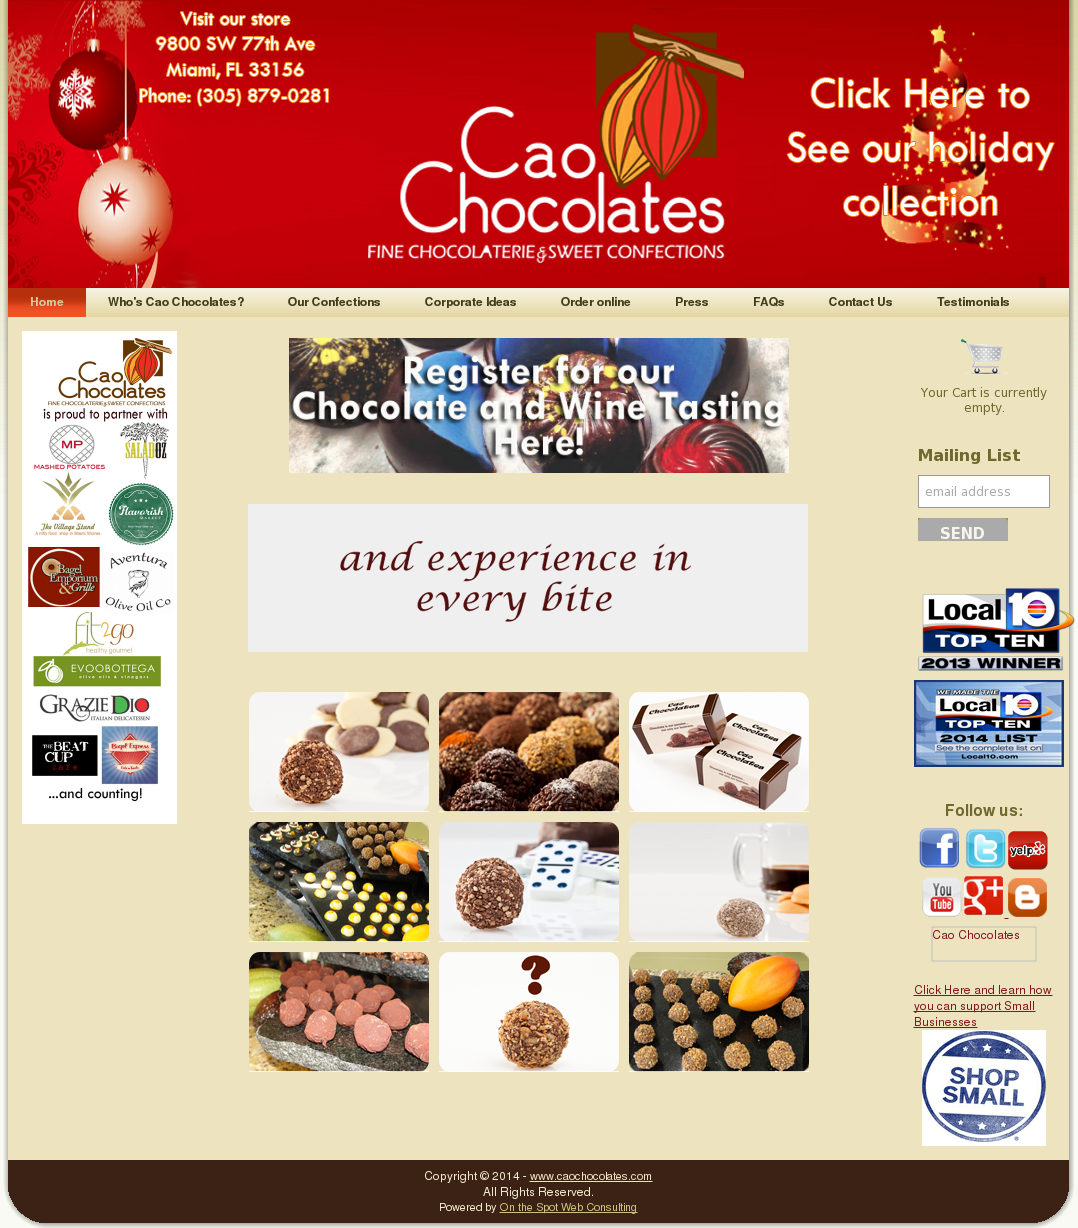 Cao Chocolates Competitors, Revenue and Employees - Owler